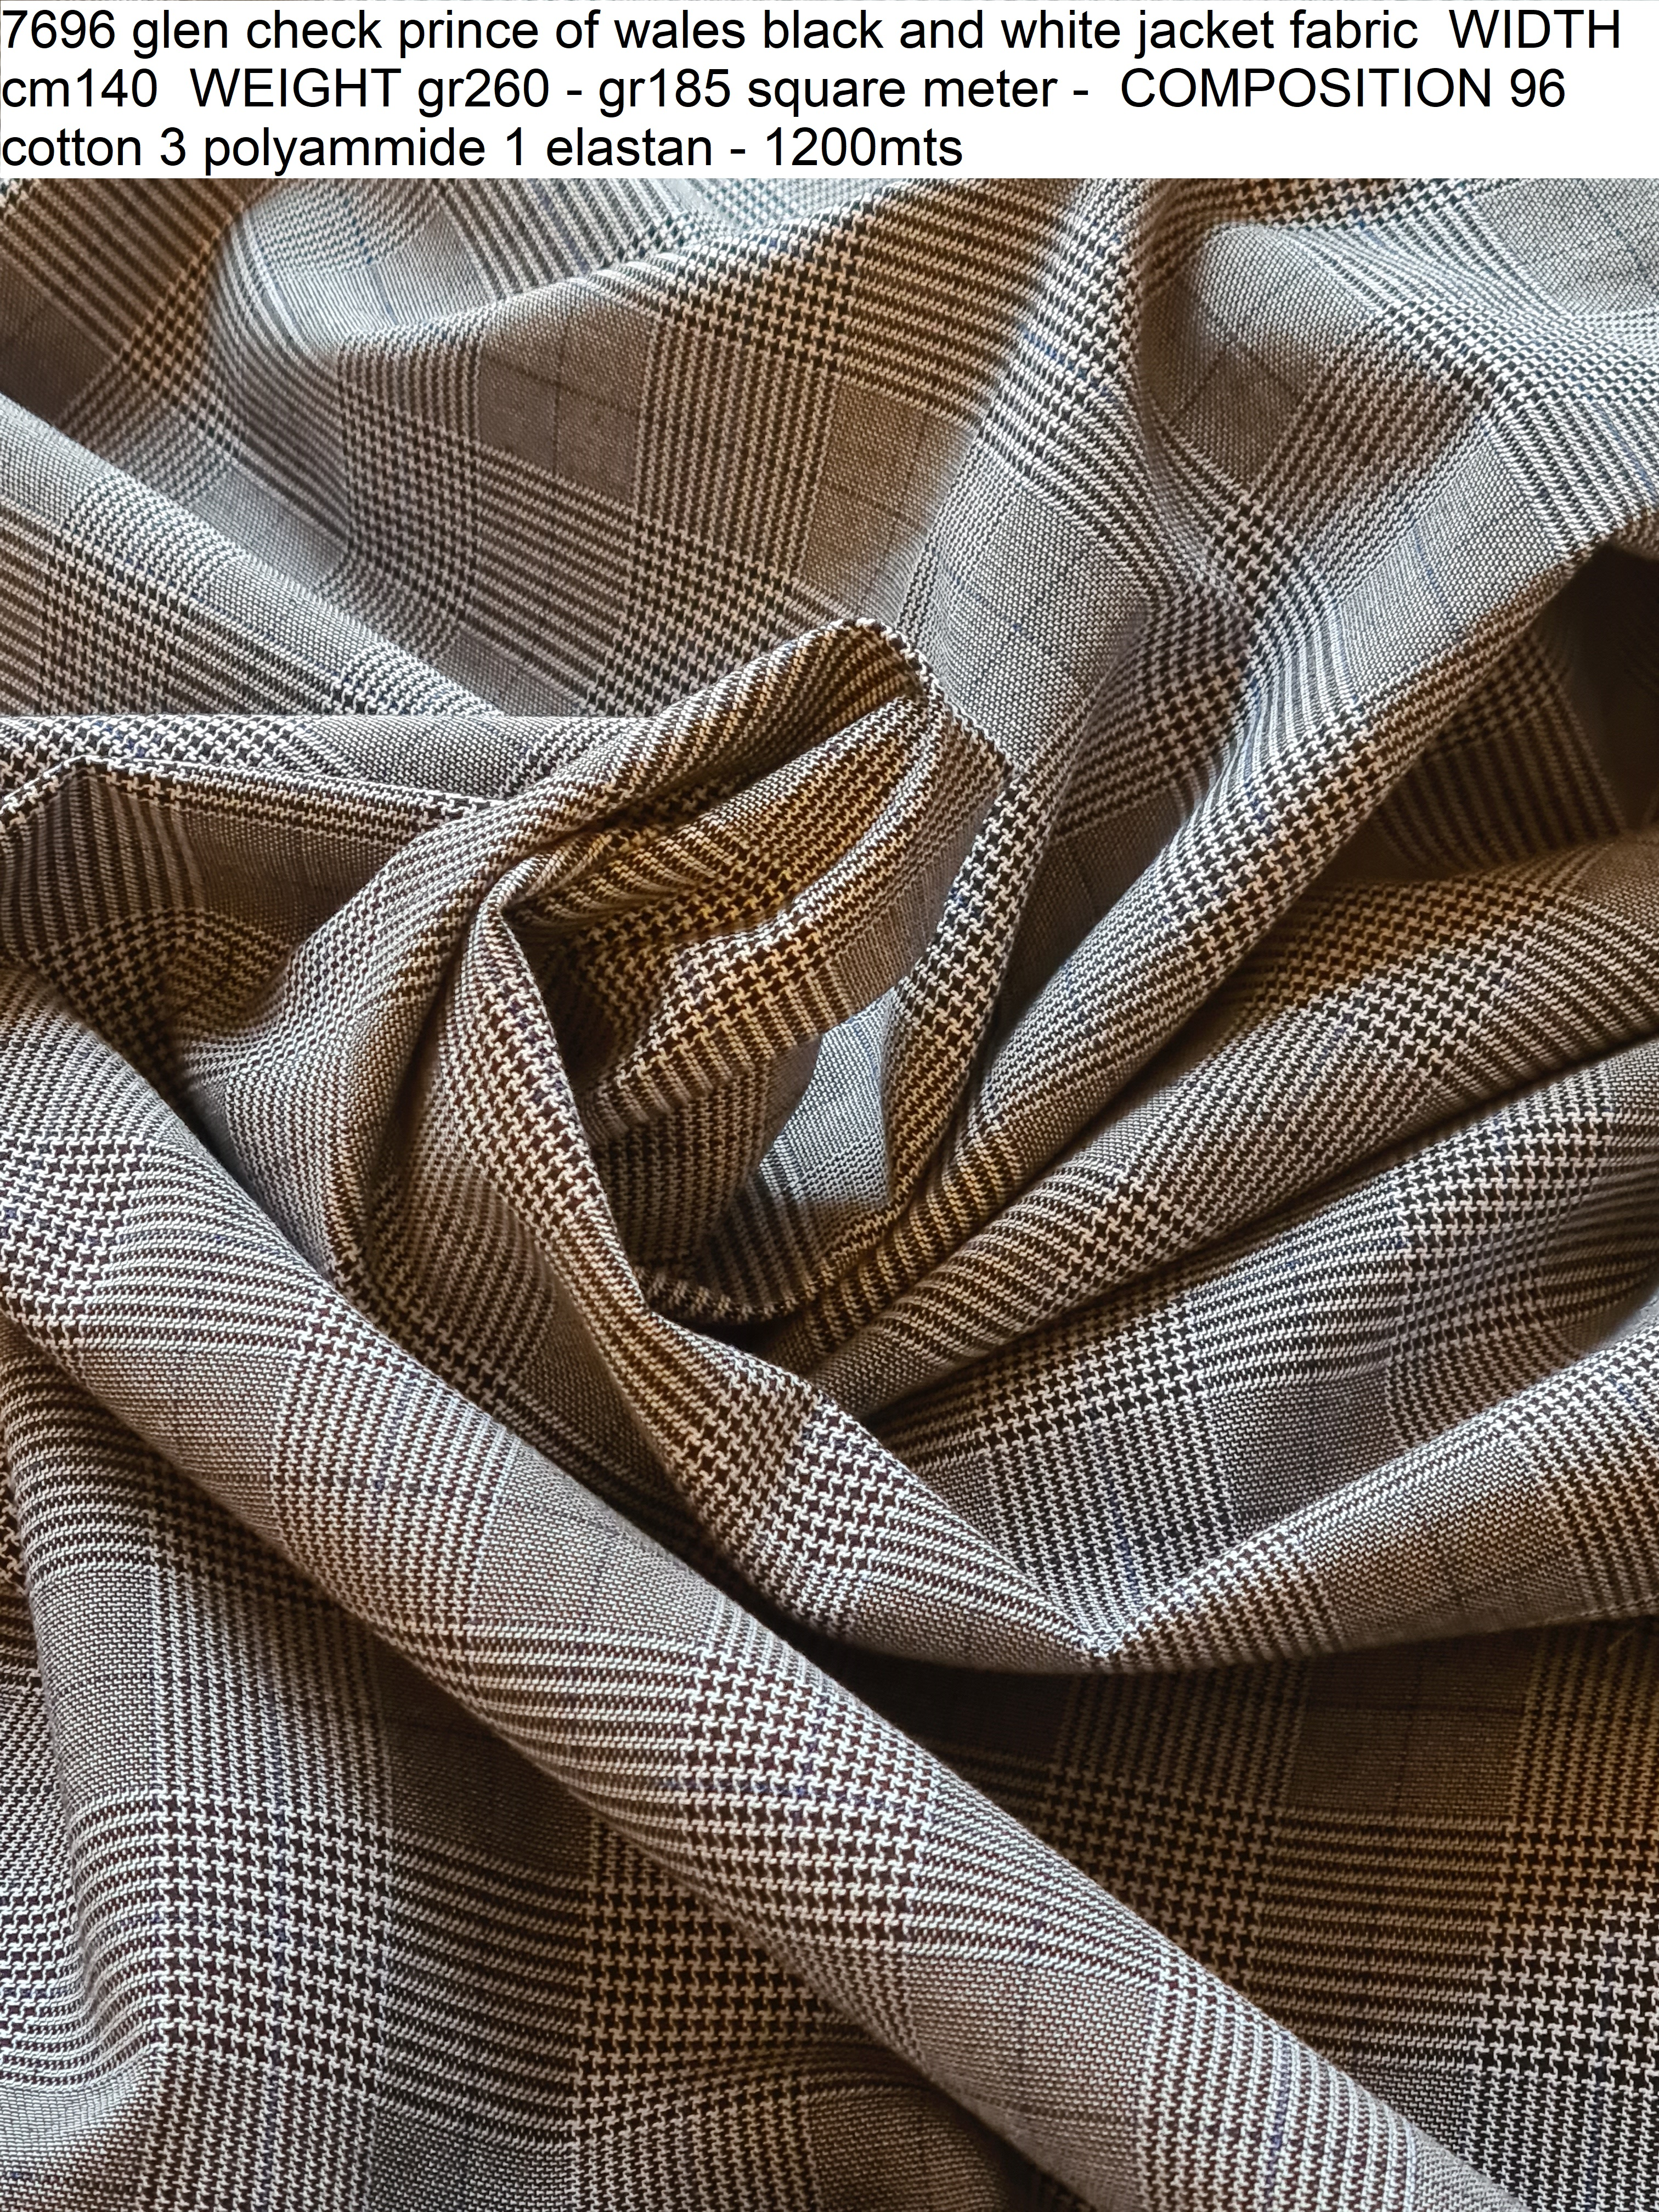 7696 glen check prince of wales black and white jacket fabric WIDTH cm140 WEIGHT gr260 - gr185 square meter - COMPOSITION 96 cotton 3 polyammide 1 elastan - 1200mts